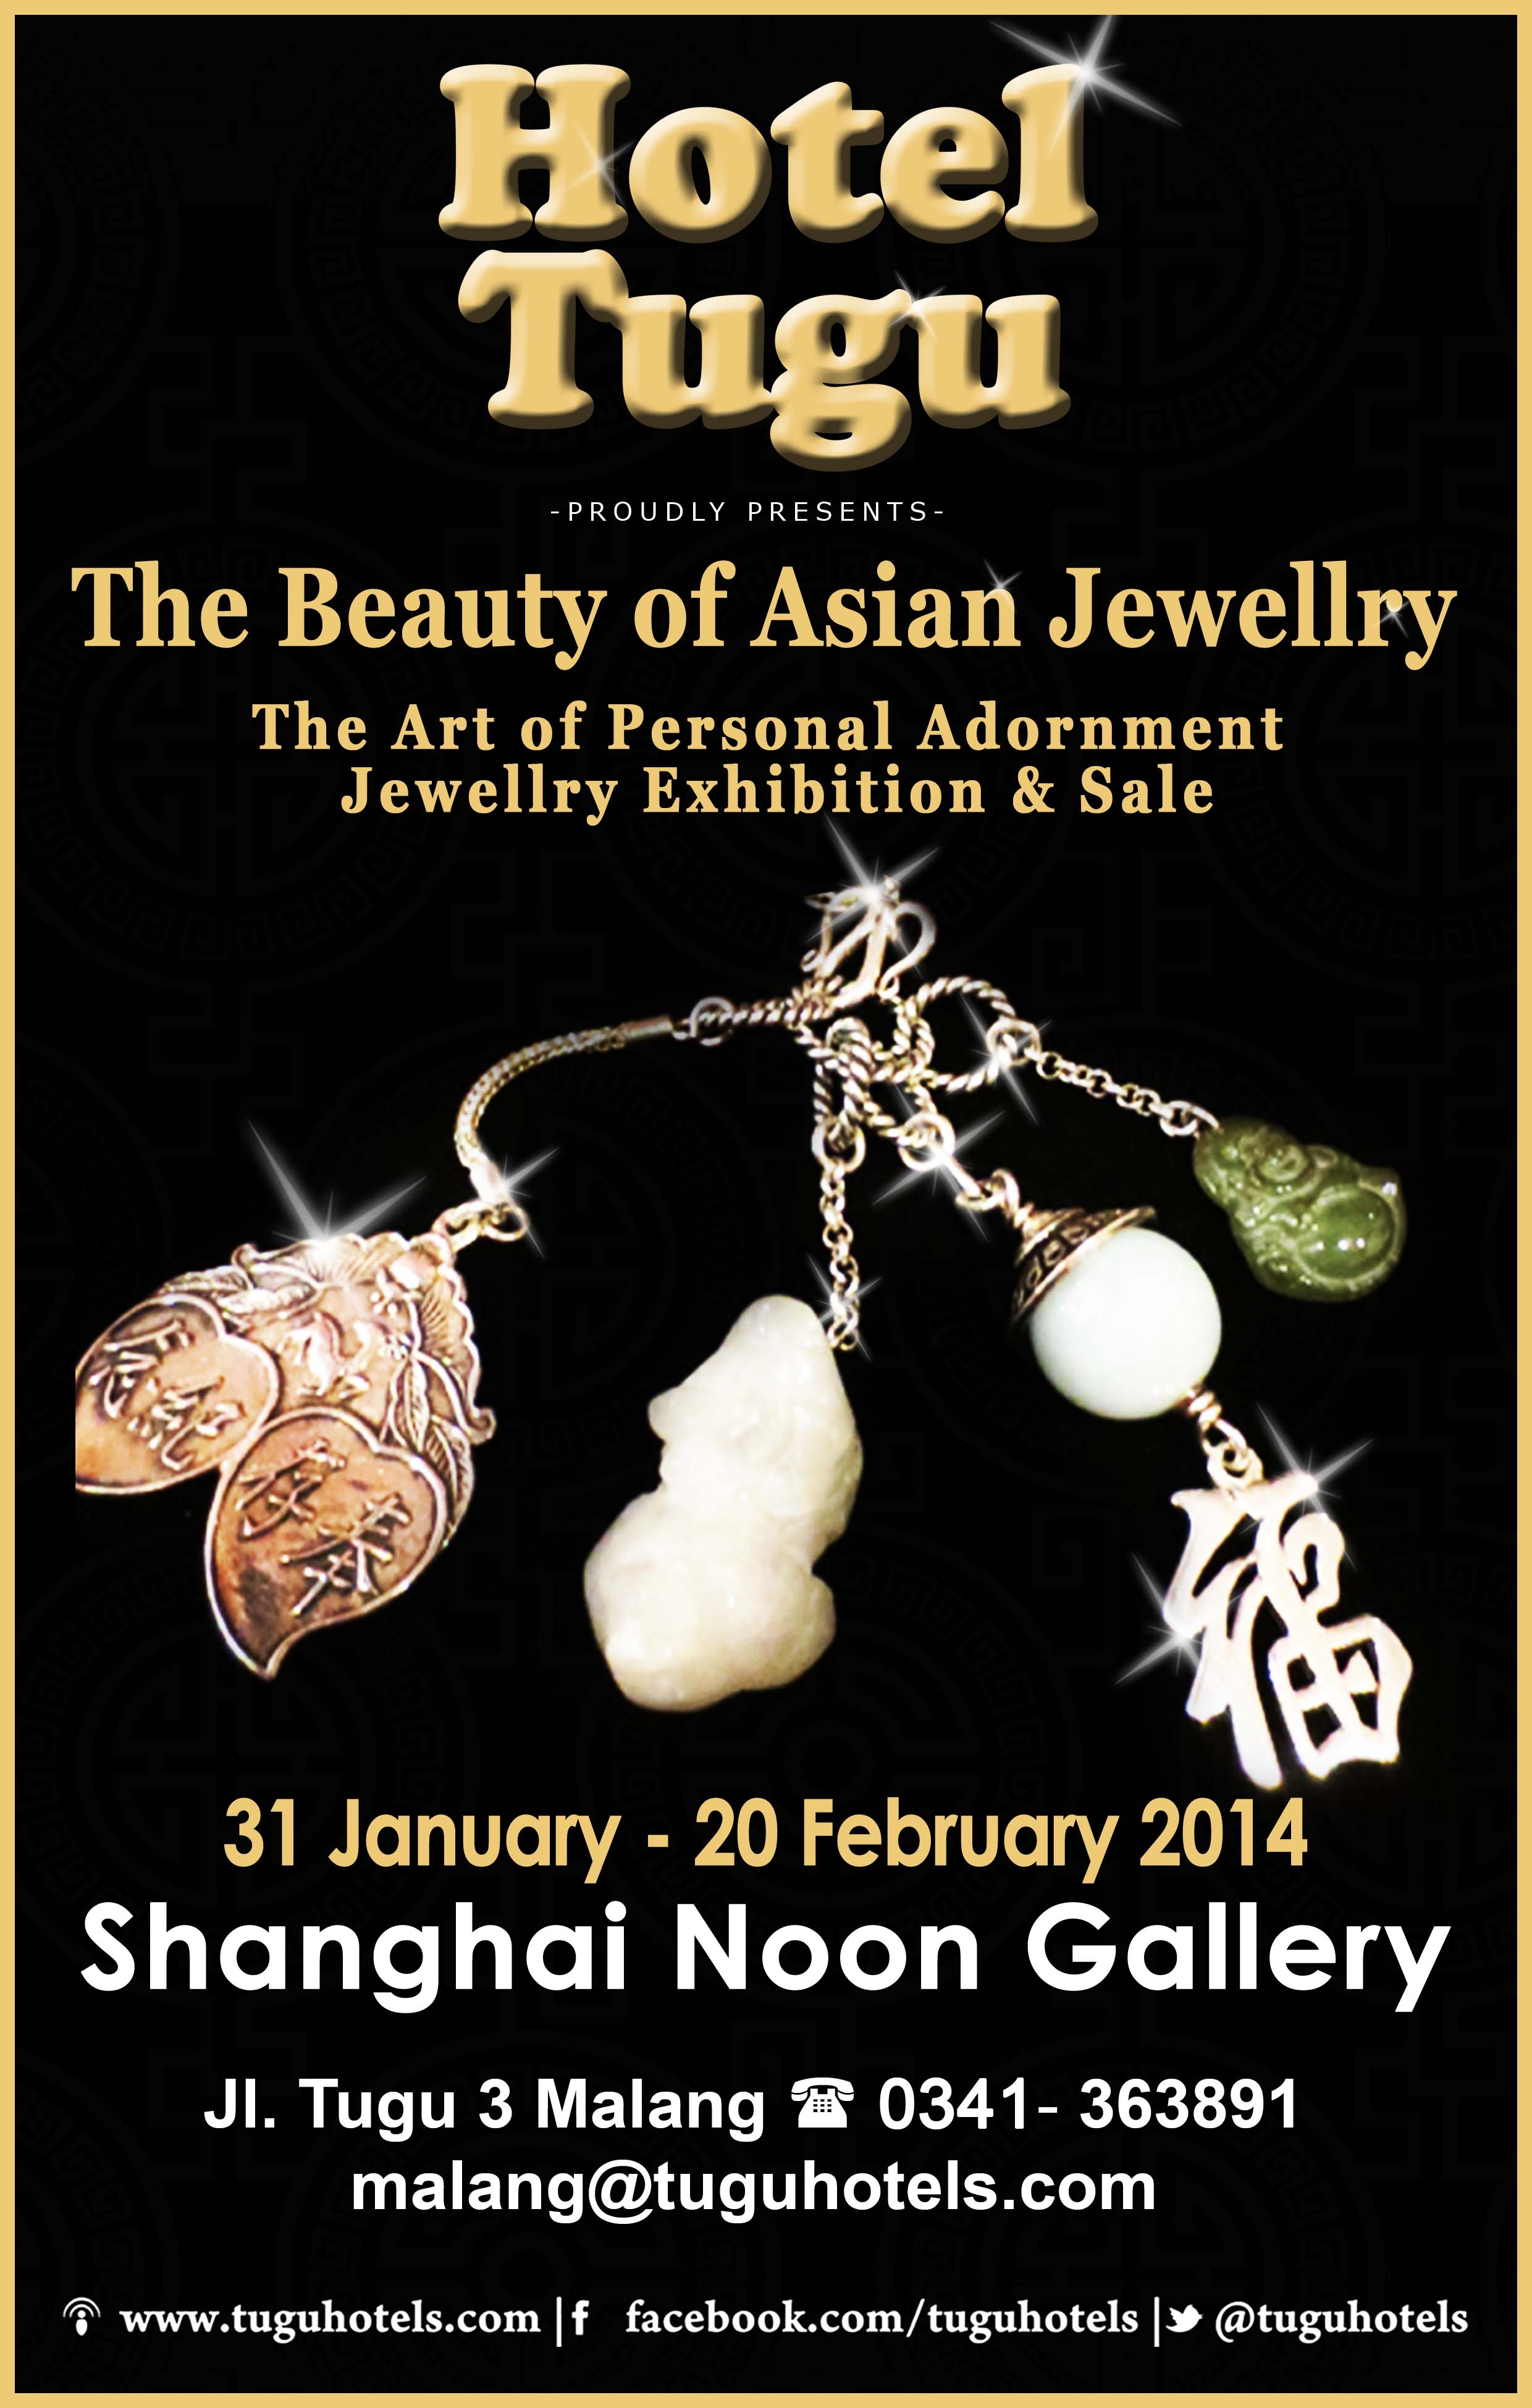 hotel tugu malang - the beauty of asian jewellry - the art of personal adornment jewellry exhibiton and sale 2014 at shanghai noon gallery